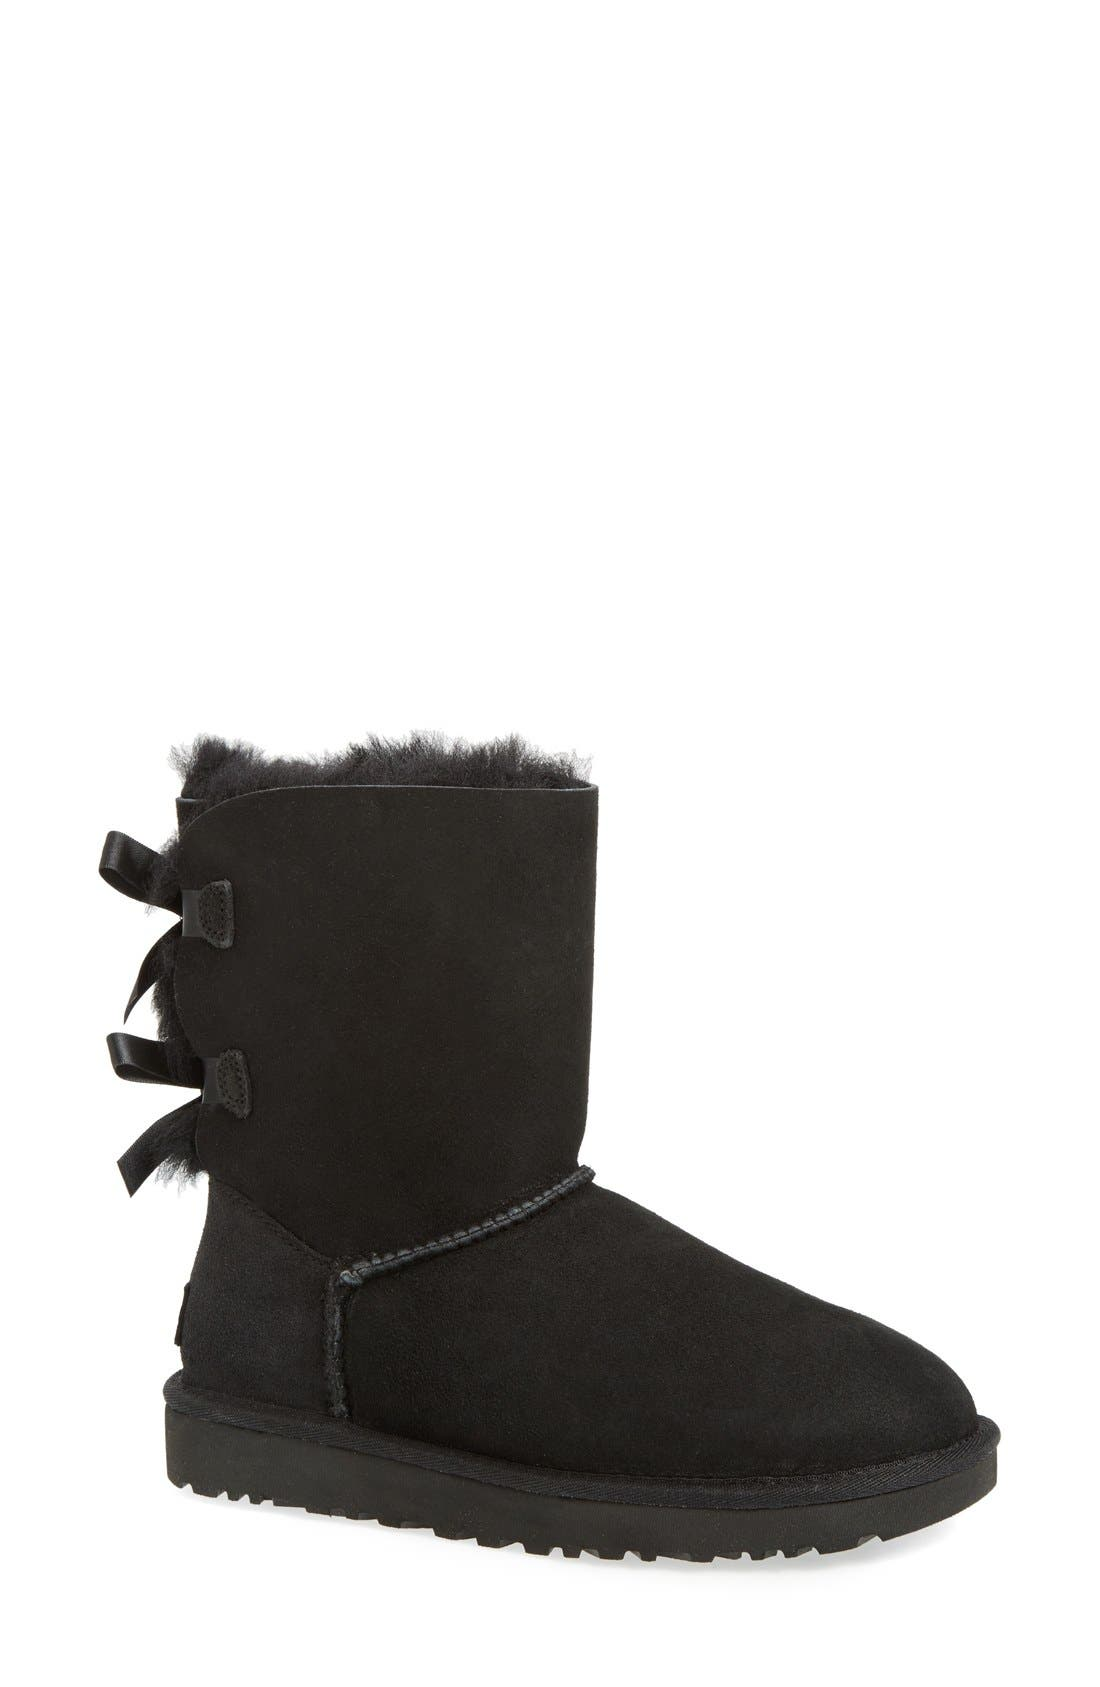 'Bailey Bow II' Boot,                             Main thumbnail 1, color,                             Black Suede